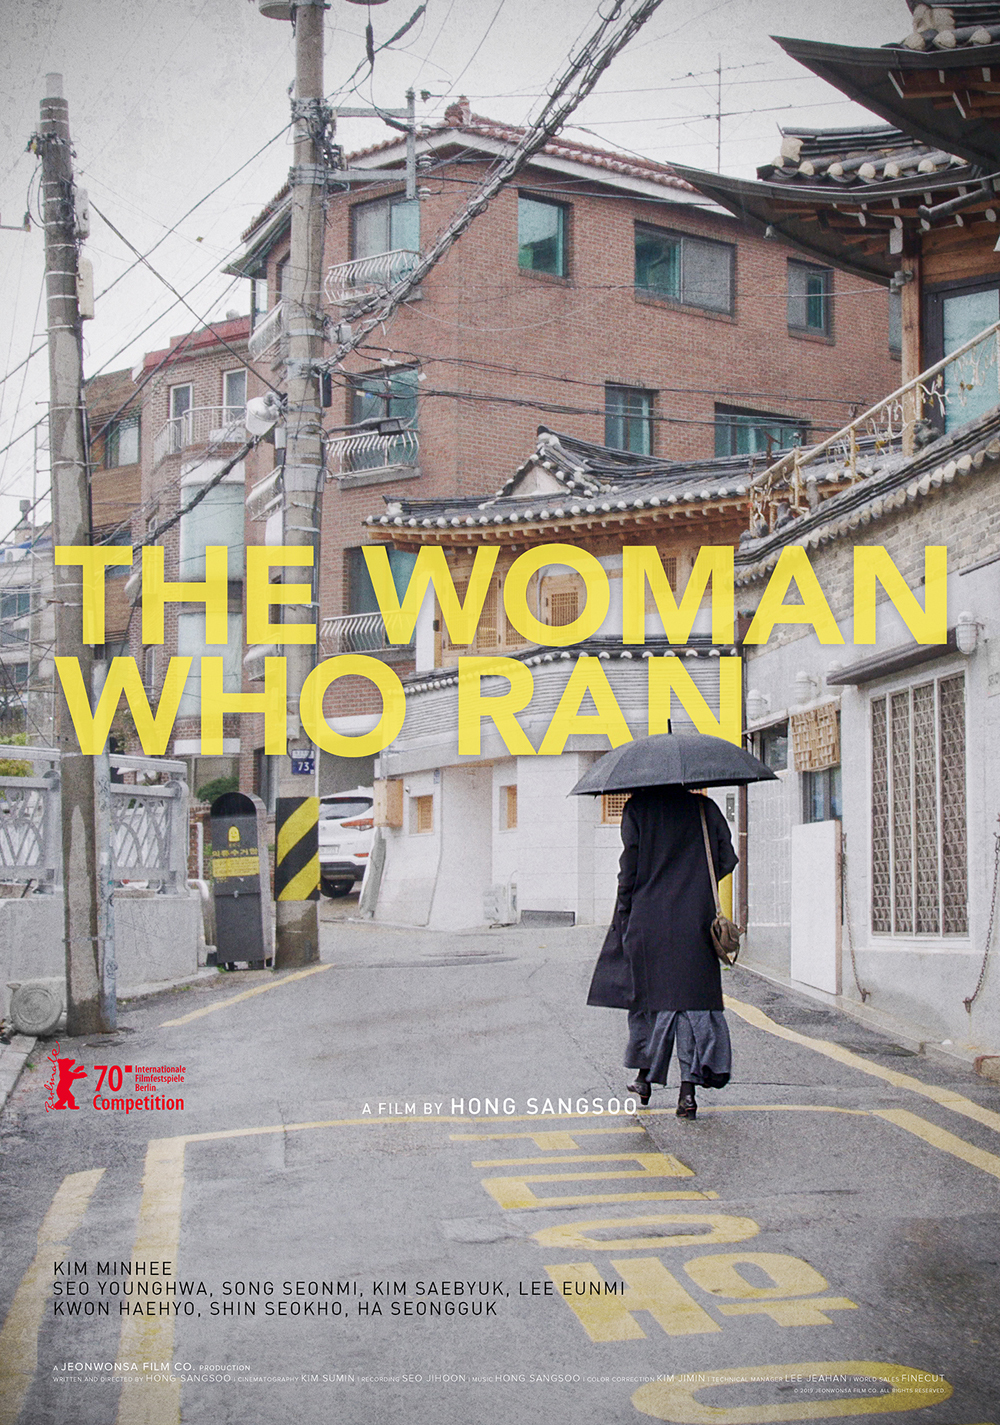 """The Woman Who Ran"" (Jeonwonsa Film)"